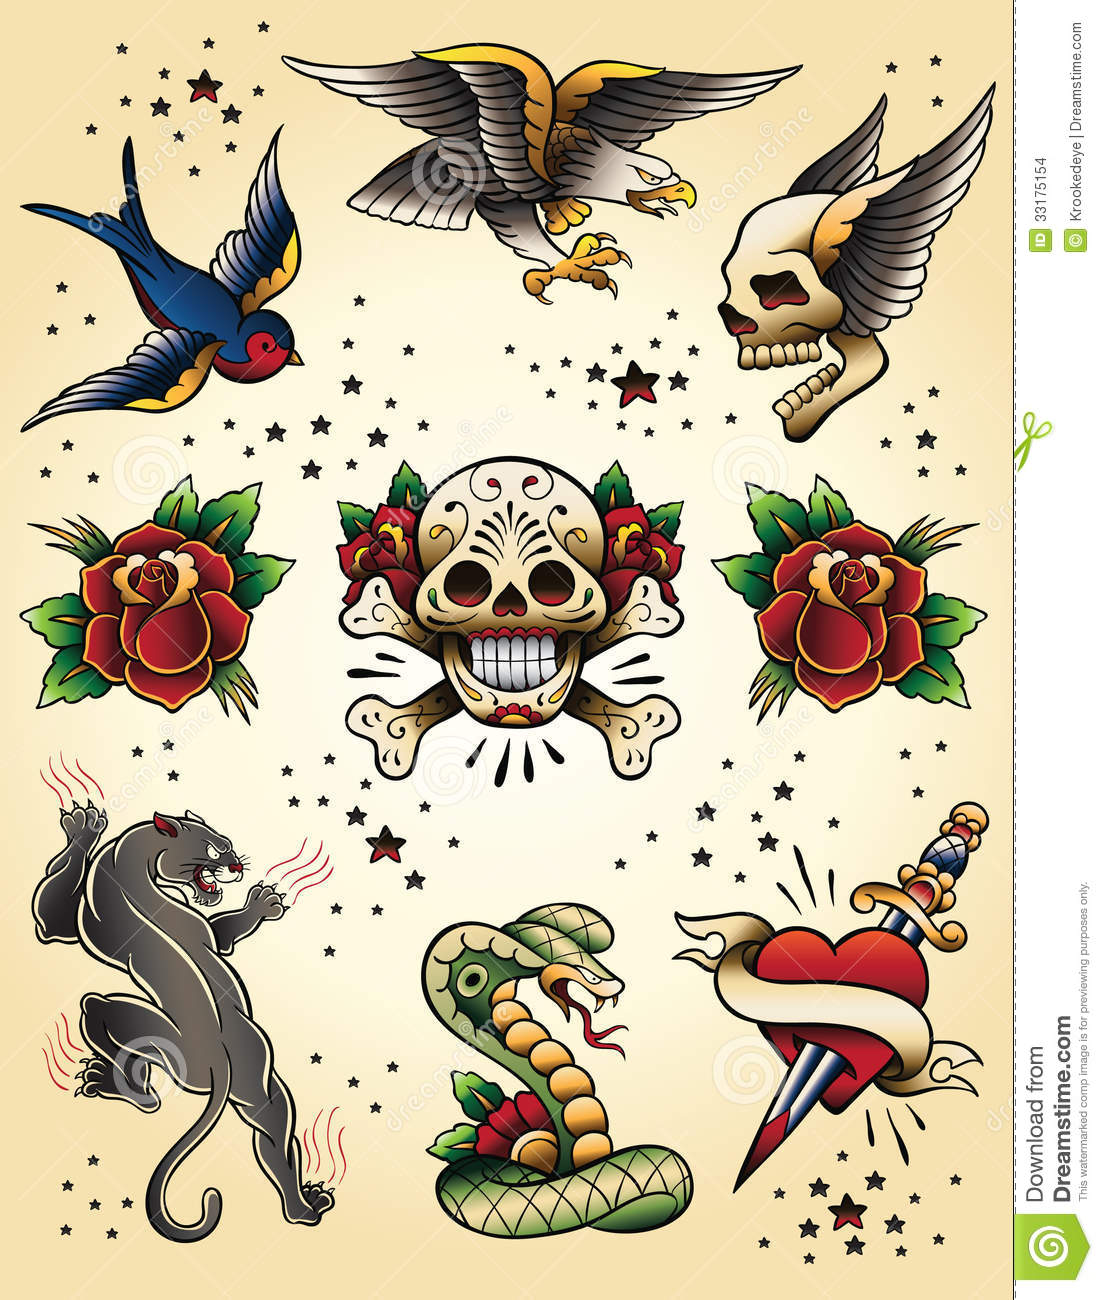 Old school tattoo dagger through heart stock photos image - Tattoo Flash Vector Elements Set Stock Images Image